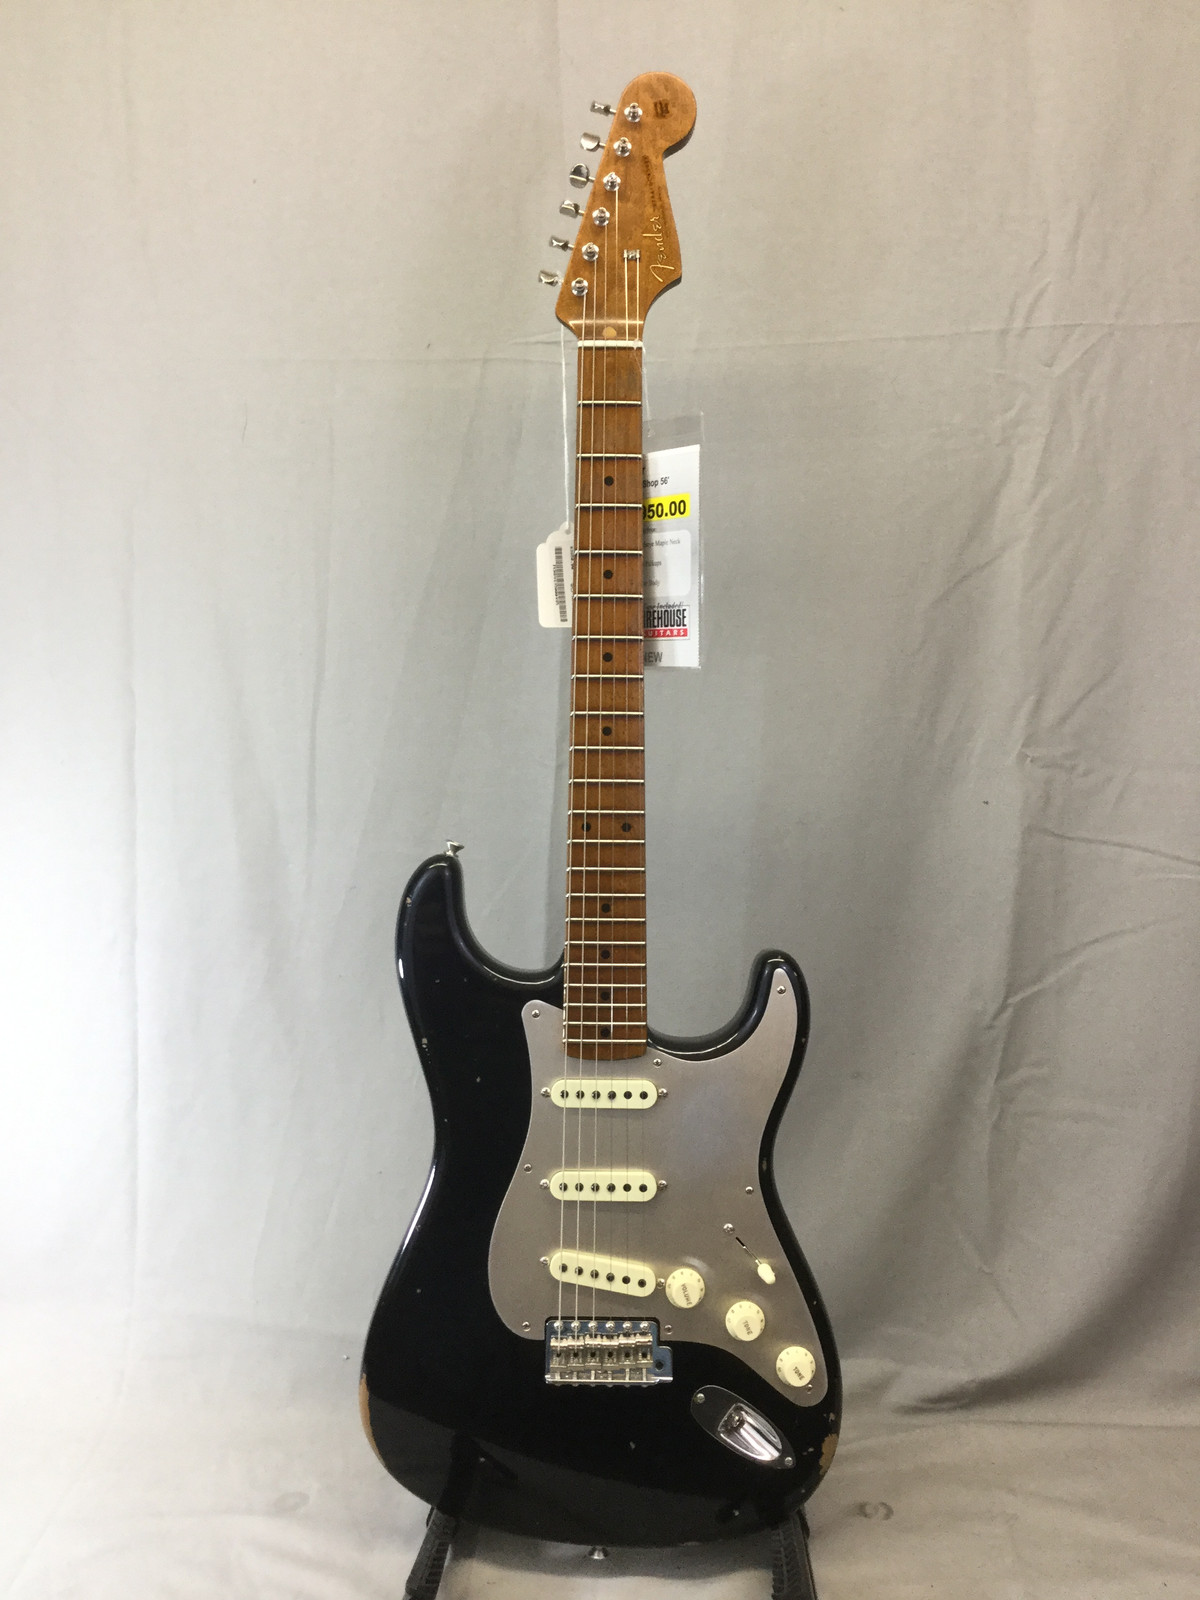 Firehouse Guitars Grandville Instrument Sales Lessons Guitar Kill Switch Wiring As Well Fender Custom Shop 56 Fat Roasted Relic Strat Mid Year Limited Edition Aged Black